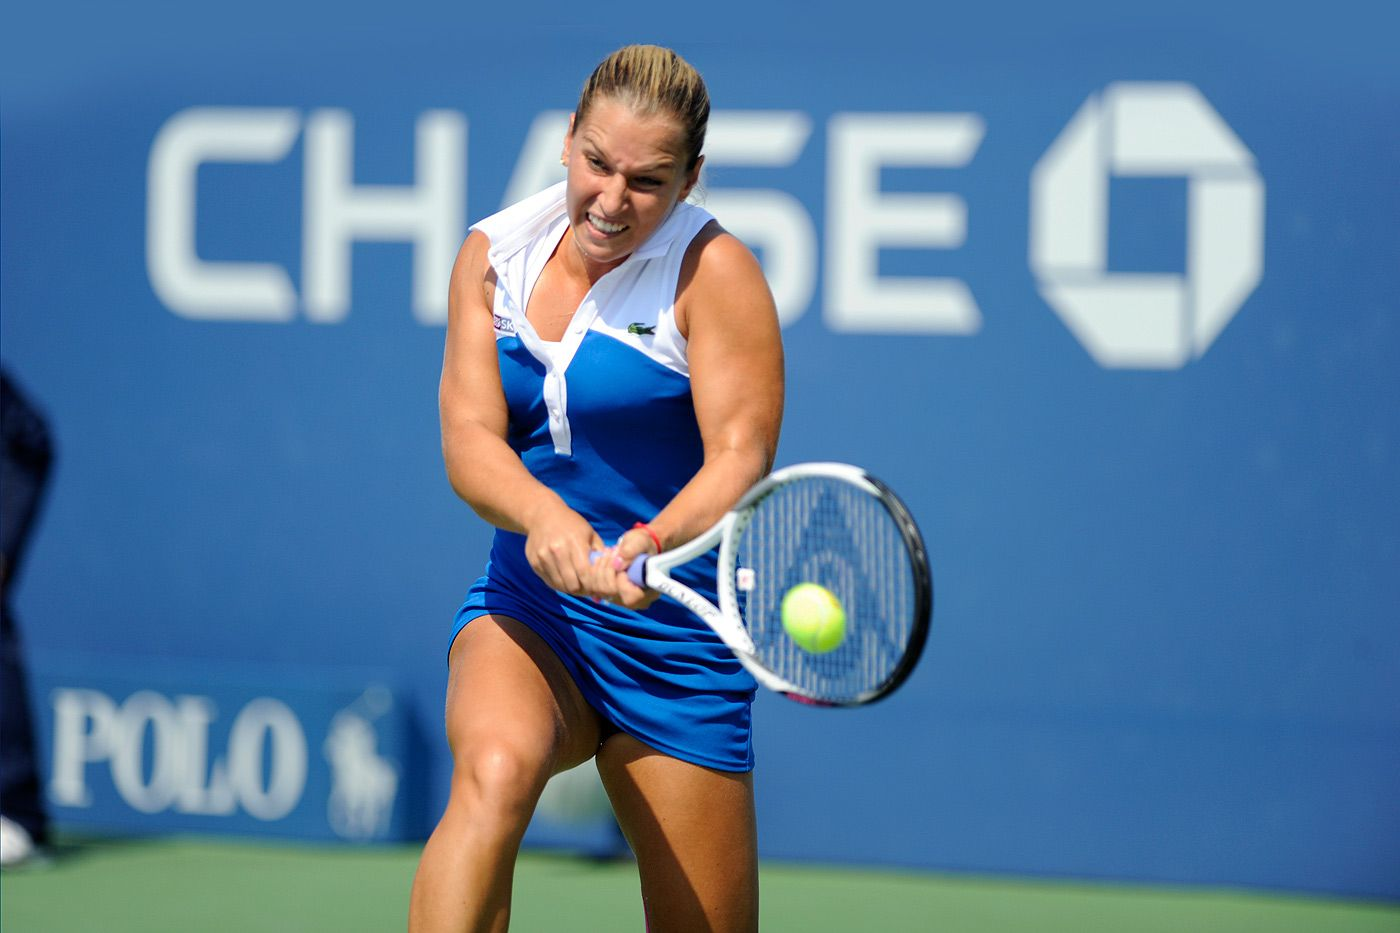 Tennis Player Dominika Cibulkova Ranked No 12 Shows Off Her Two Handed Backhand Tennis Players Tennis Professional Tennis Players